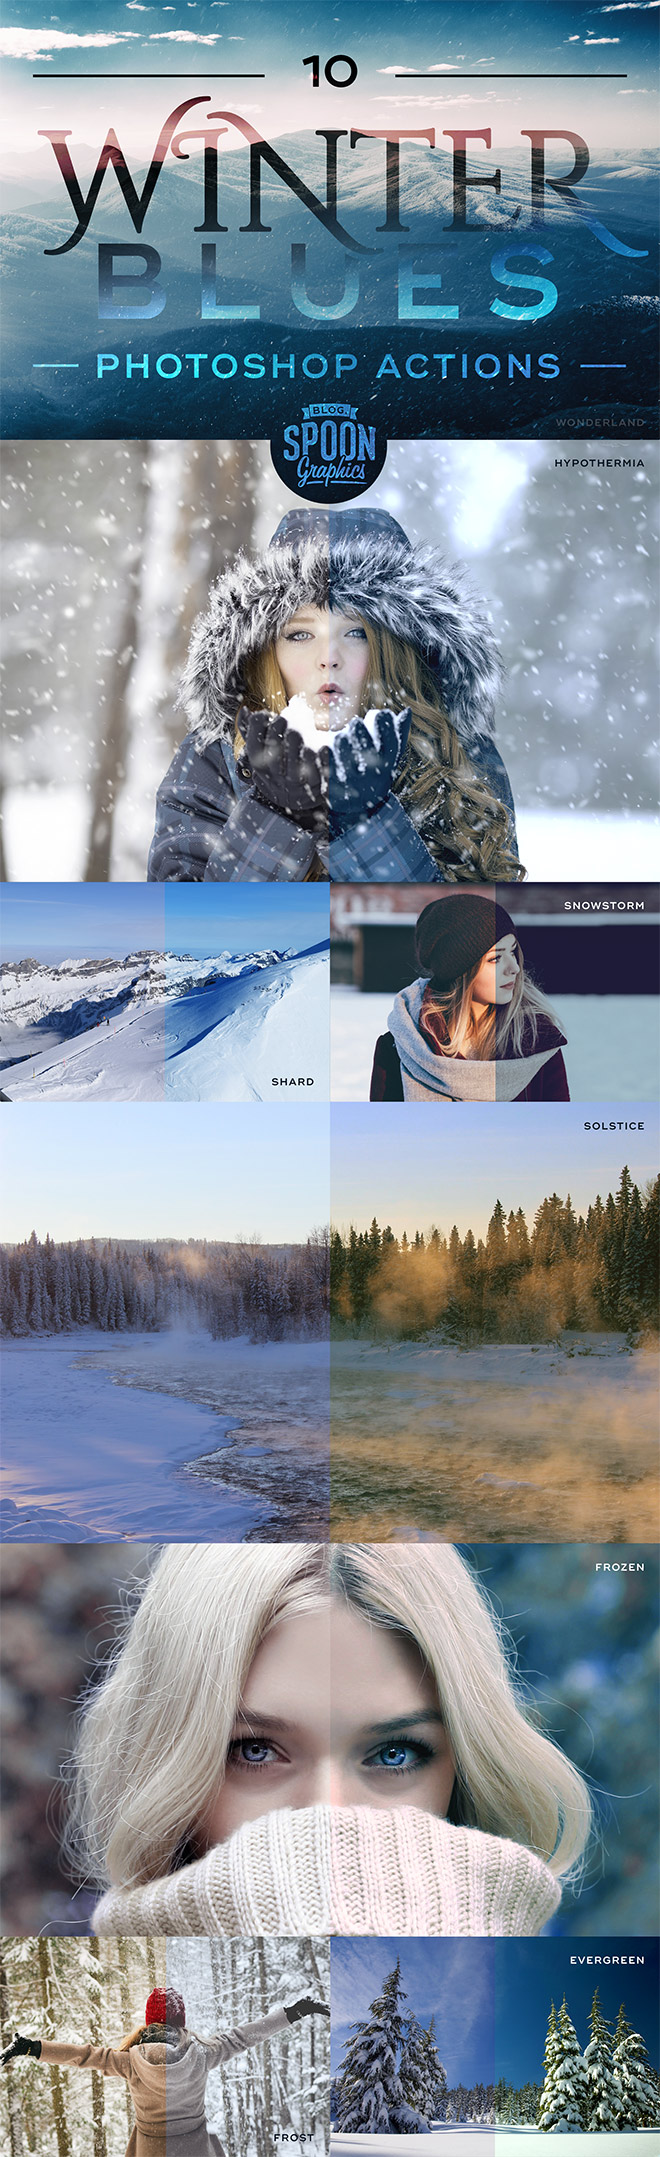 Free Winter Blues Photoshop Actions